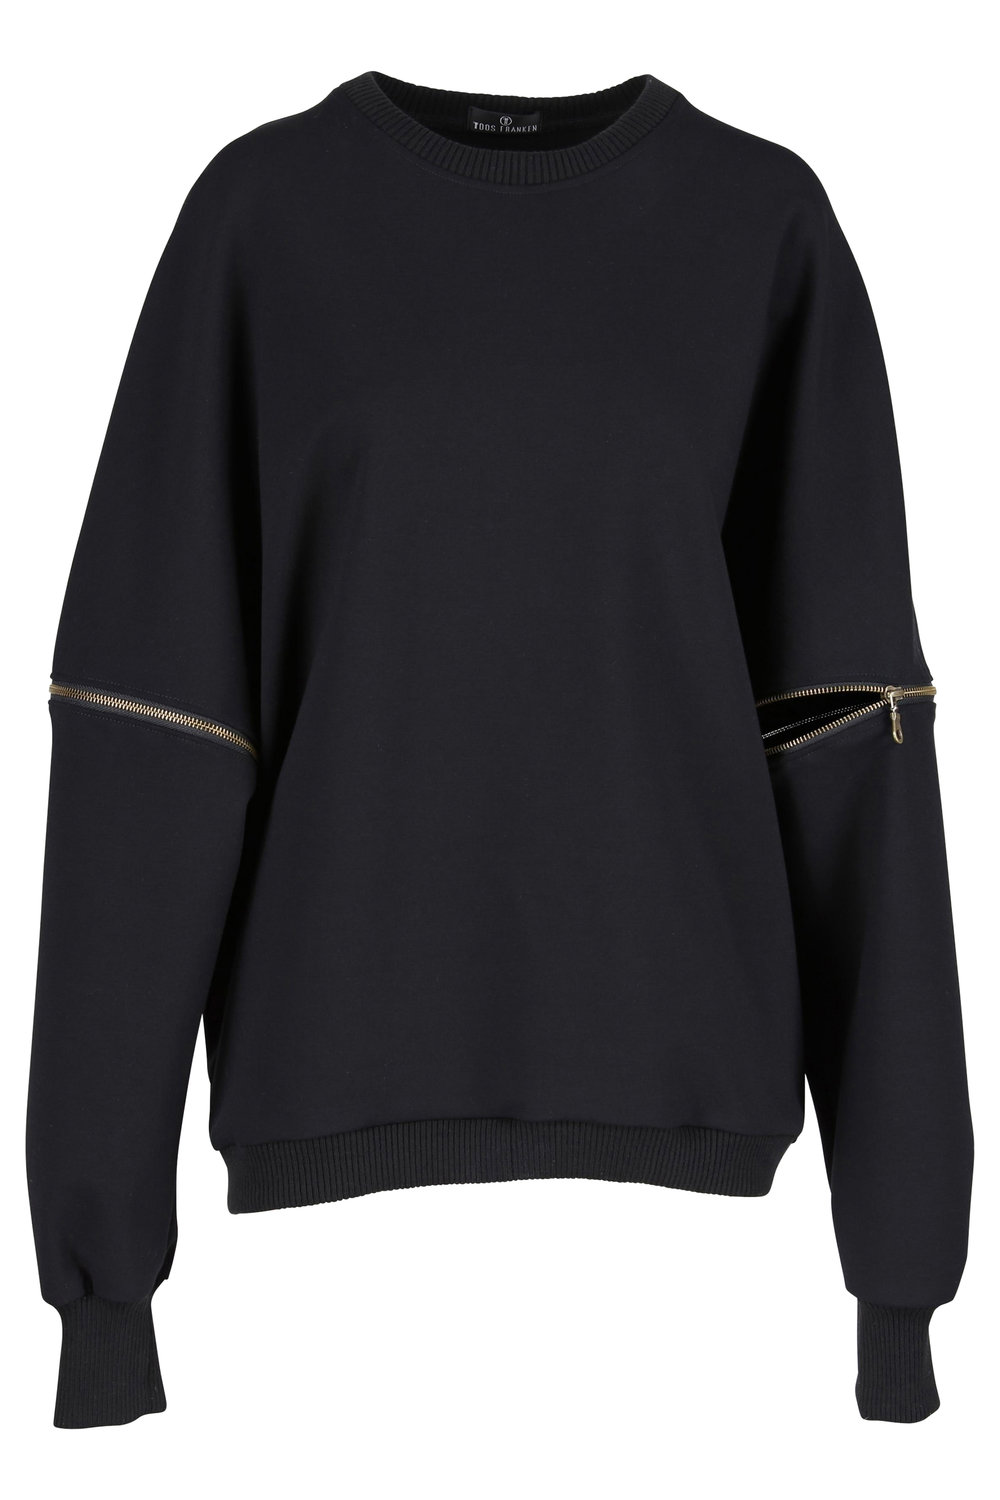 Sweater-Zip-Black-01_220.jpeg